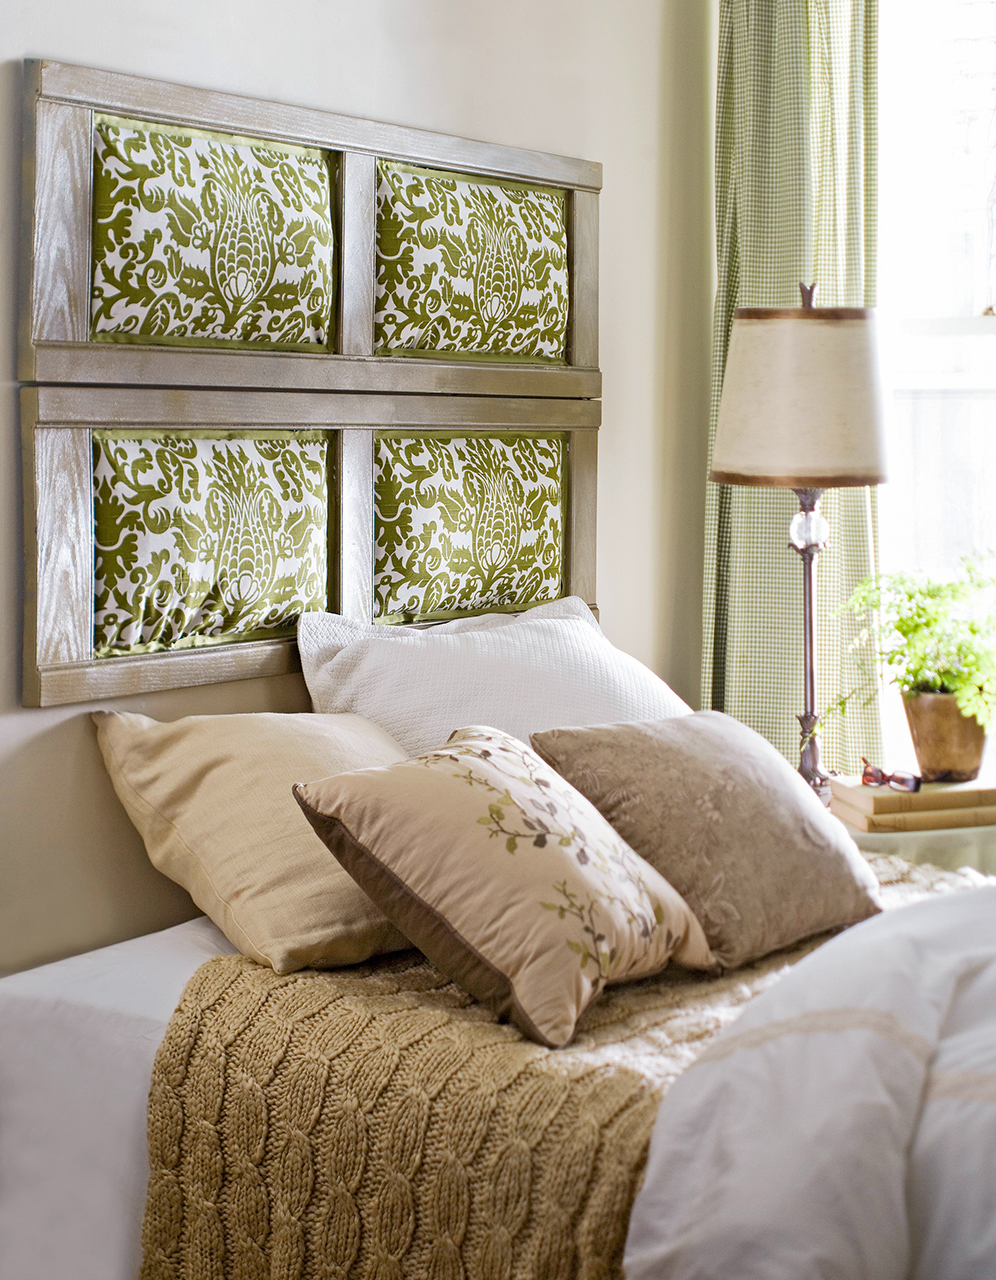 upholstered headboard damask pattern